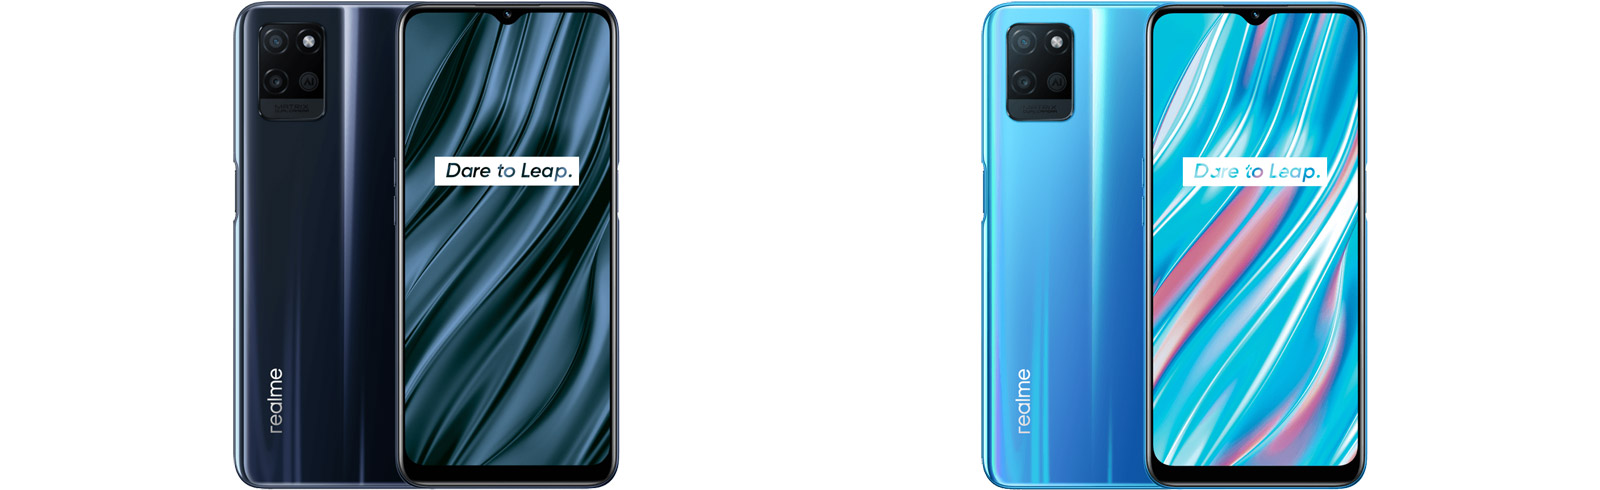 Realme V11 5G with Dimensity 700 chipset goes official in China for CNY 1199 (USD 185)